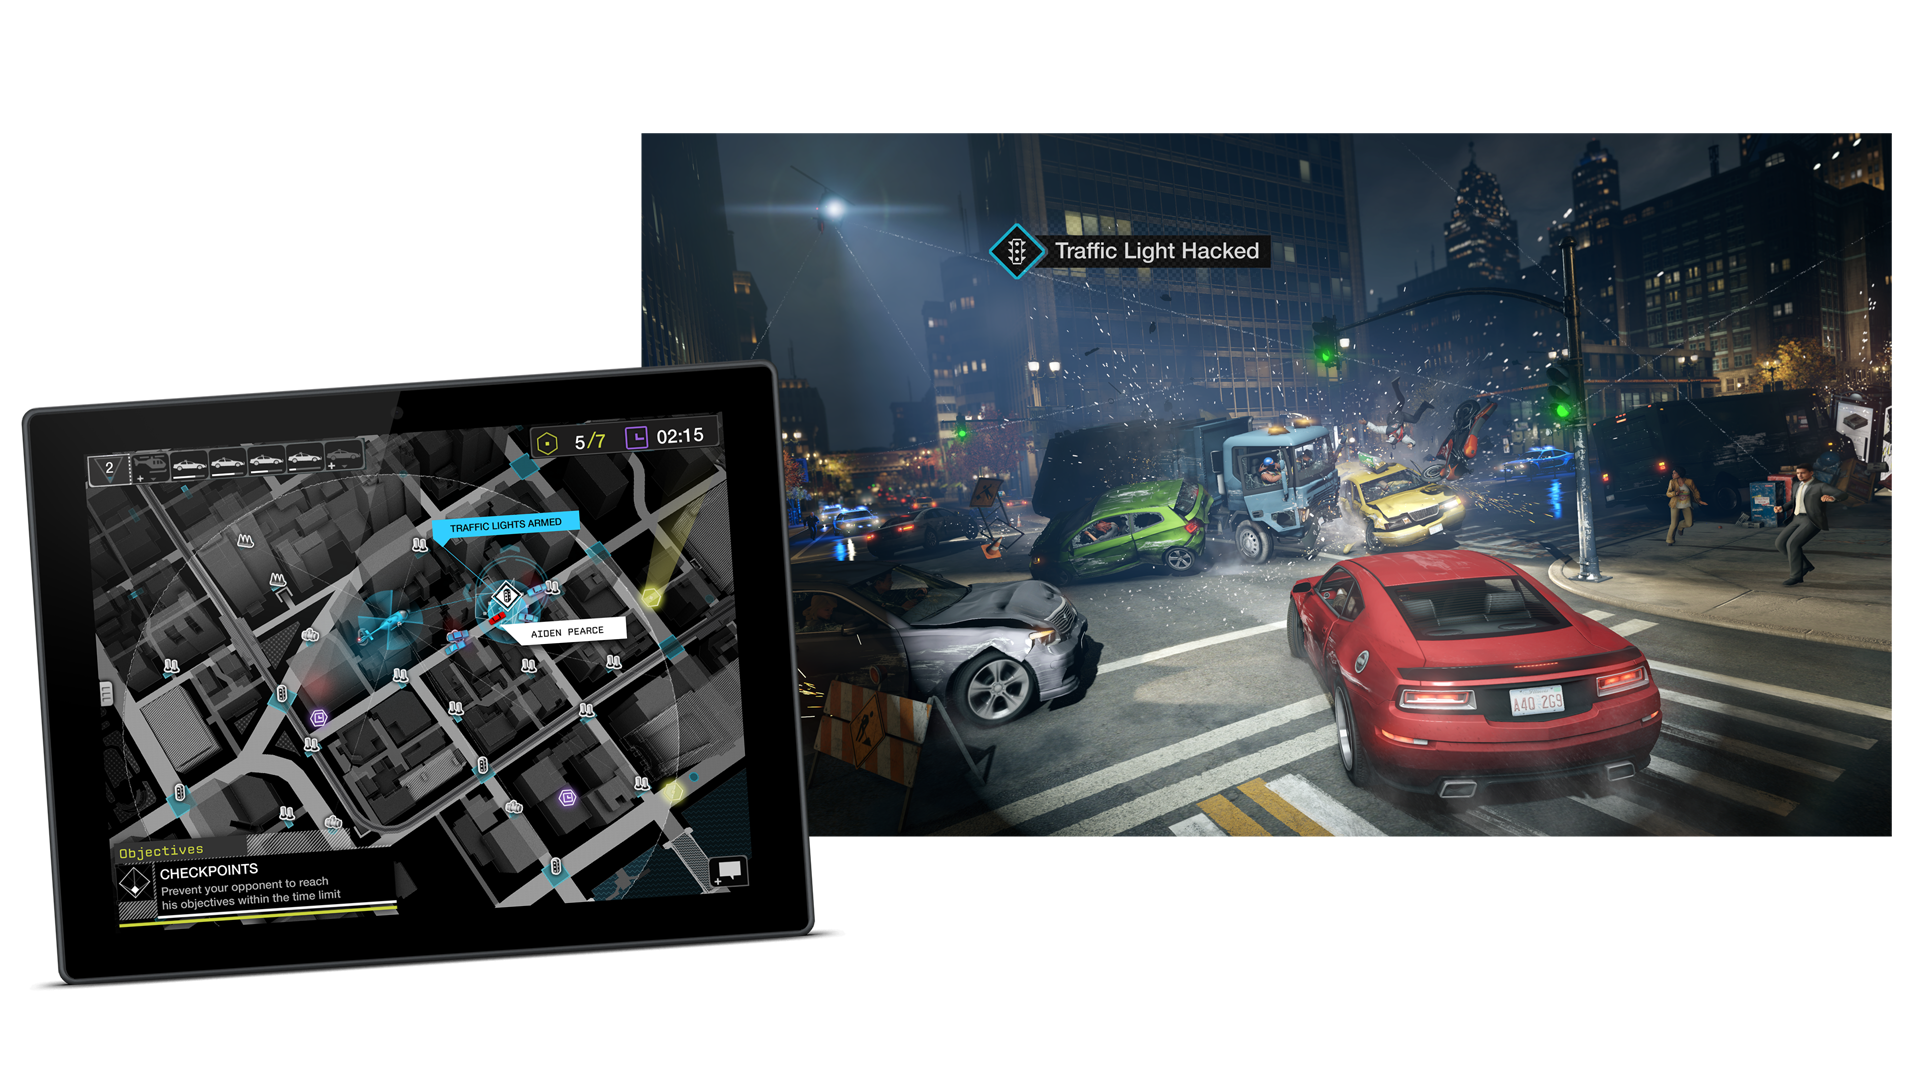 Watch_dogs_ctos_-_mobile_companionapp_trafficlight_tablet_collage